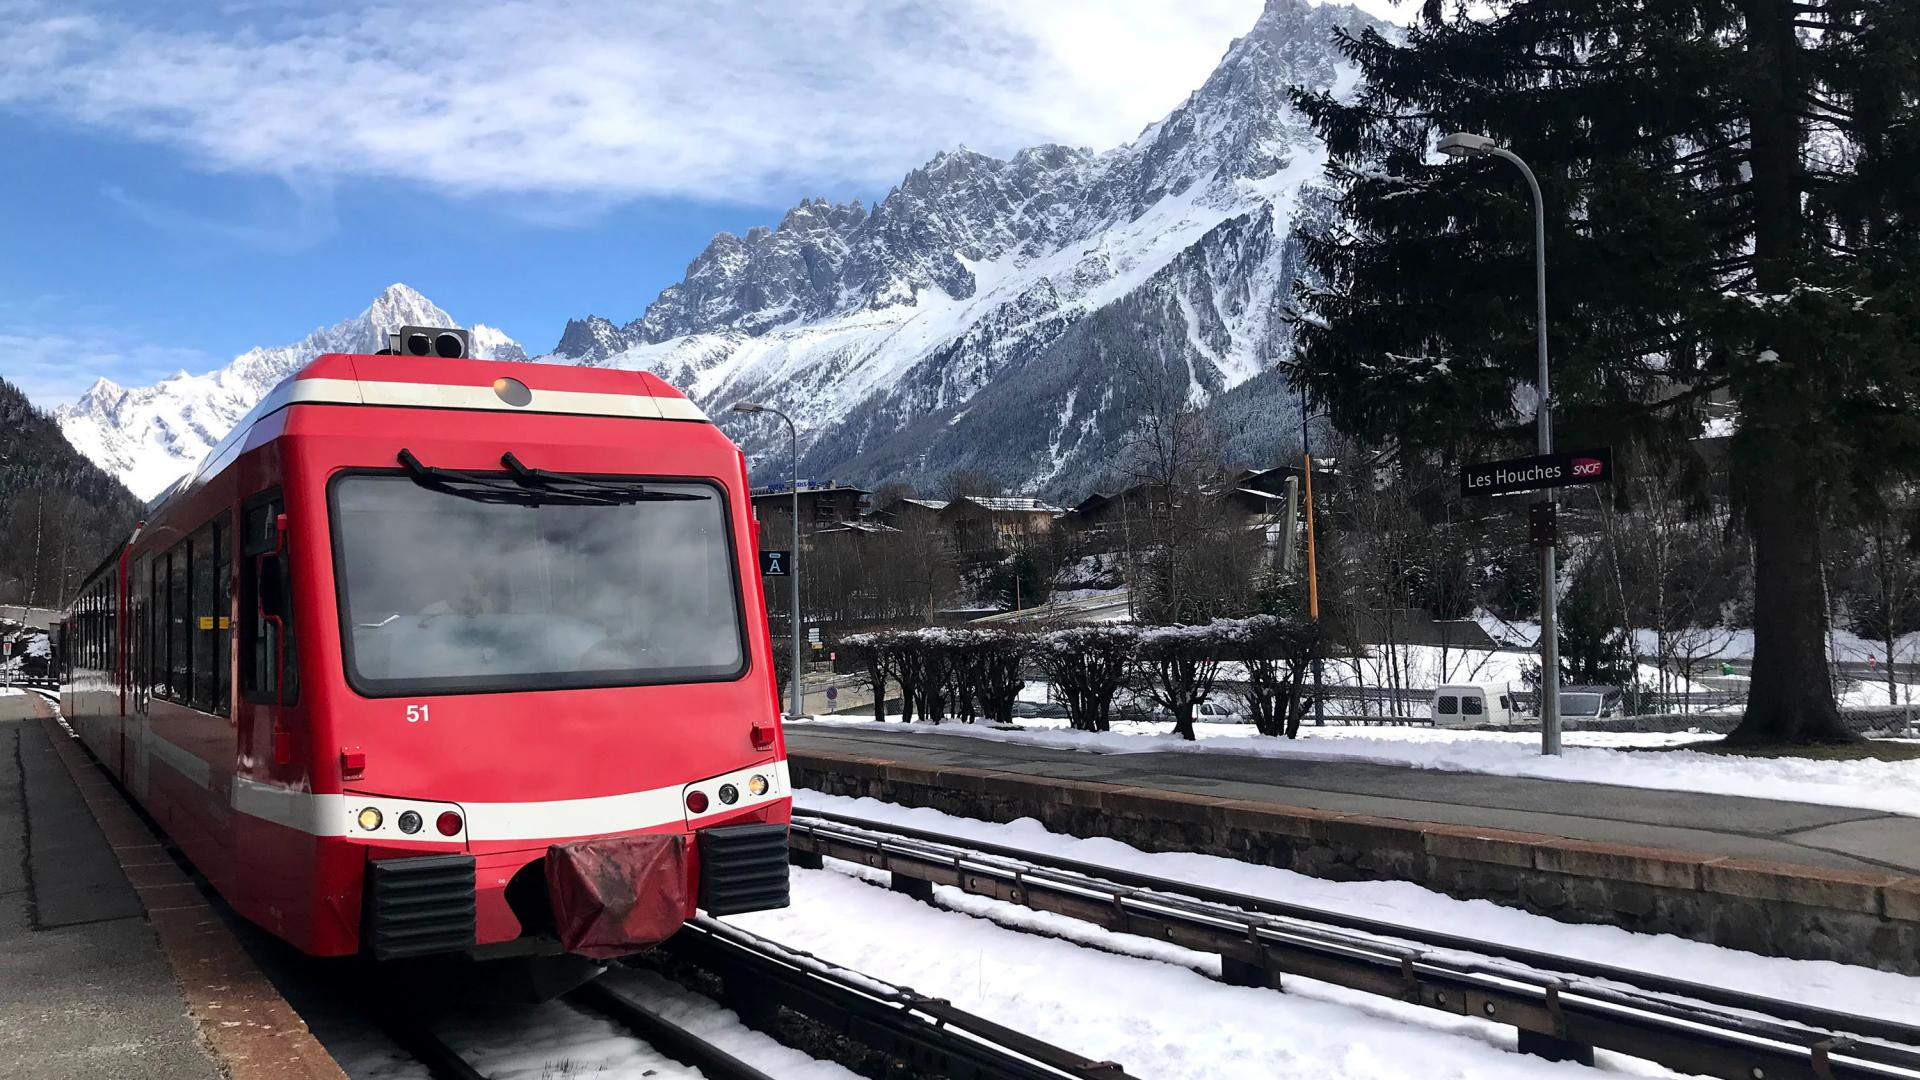 train en gare des Houches